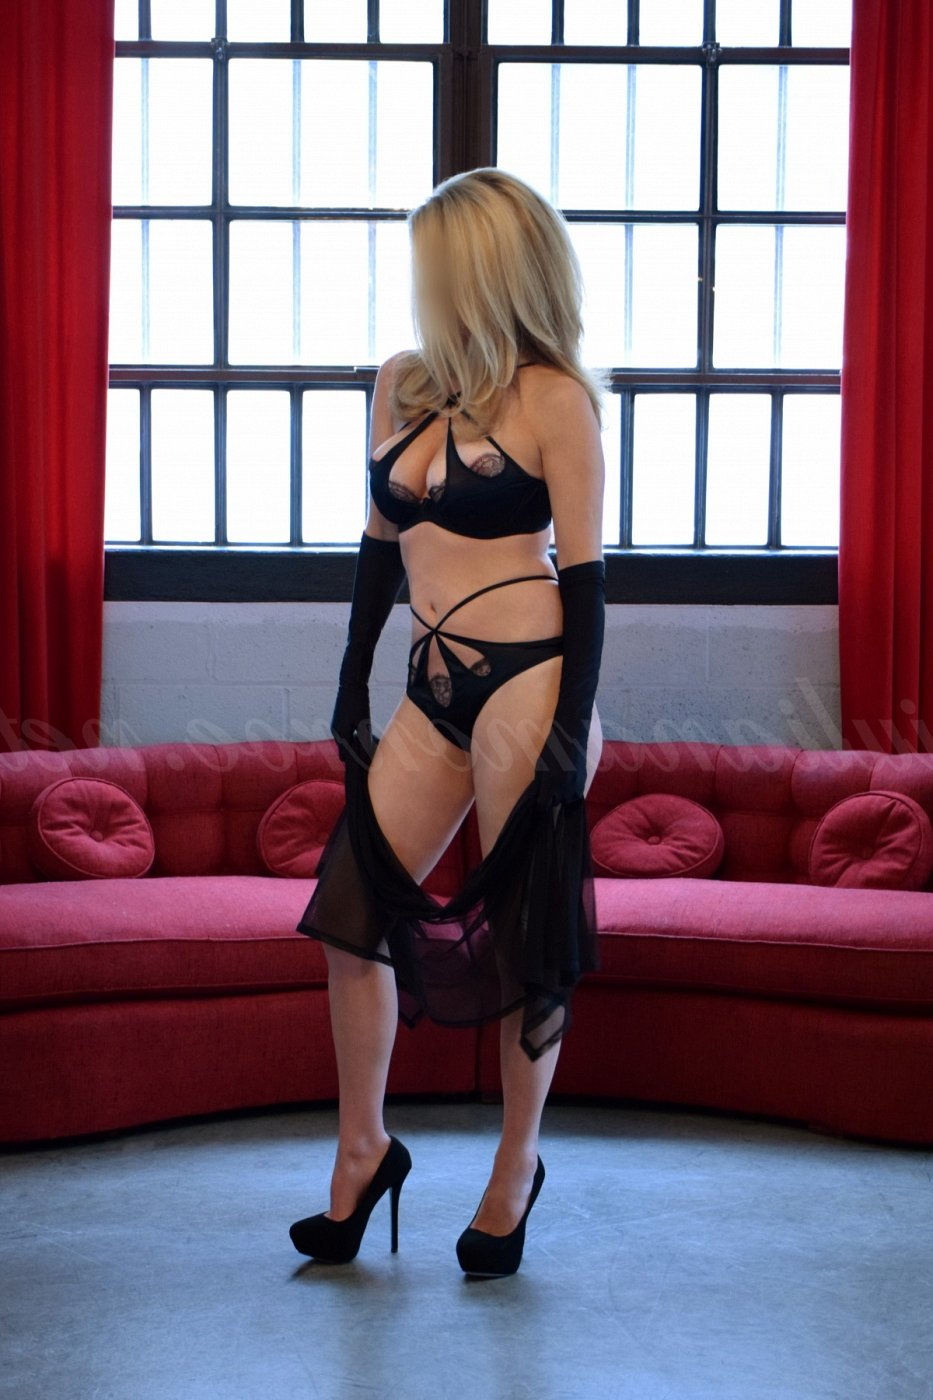 happy ending massage in Oakville MO, call girl